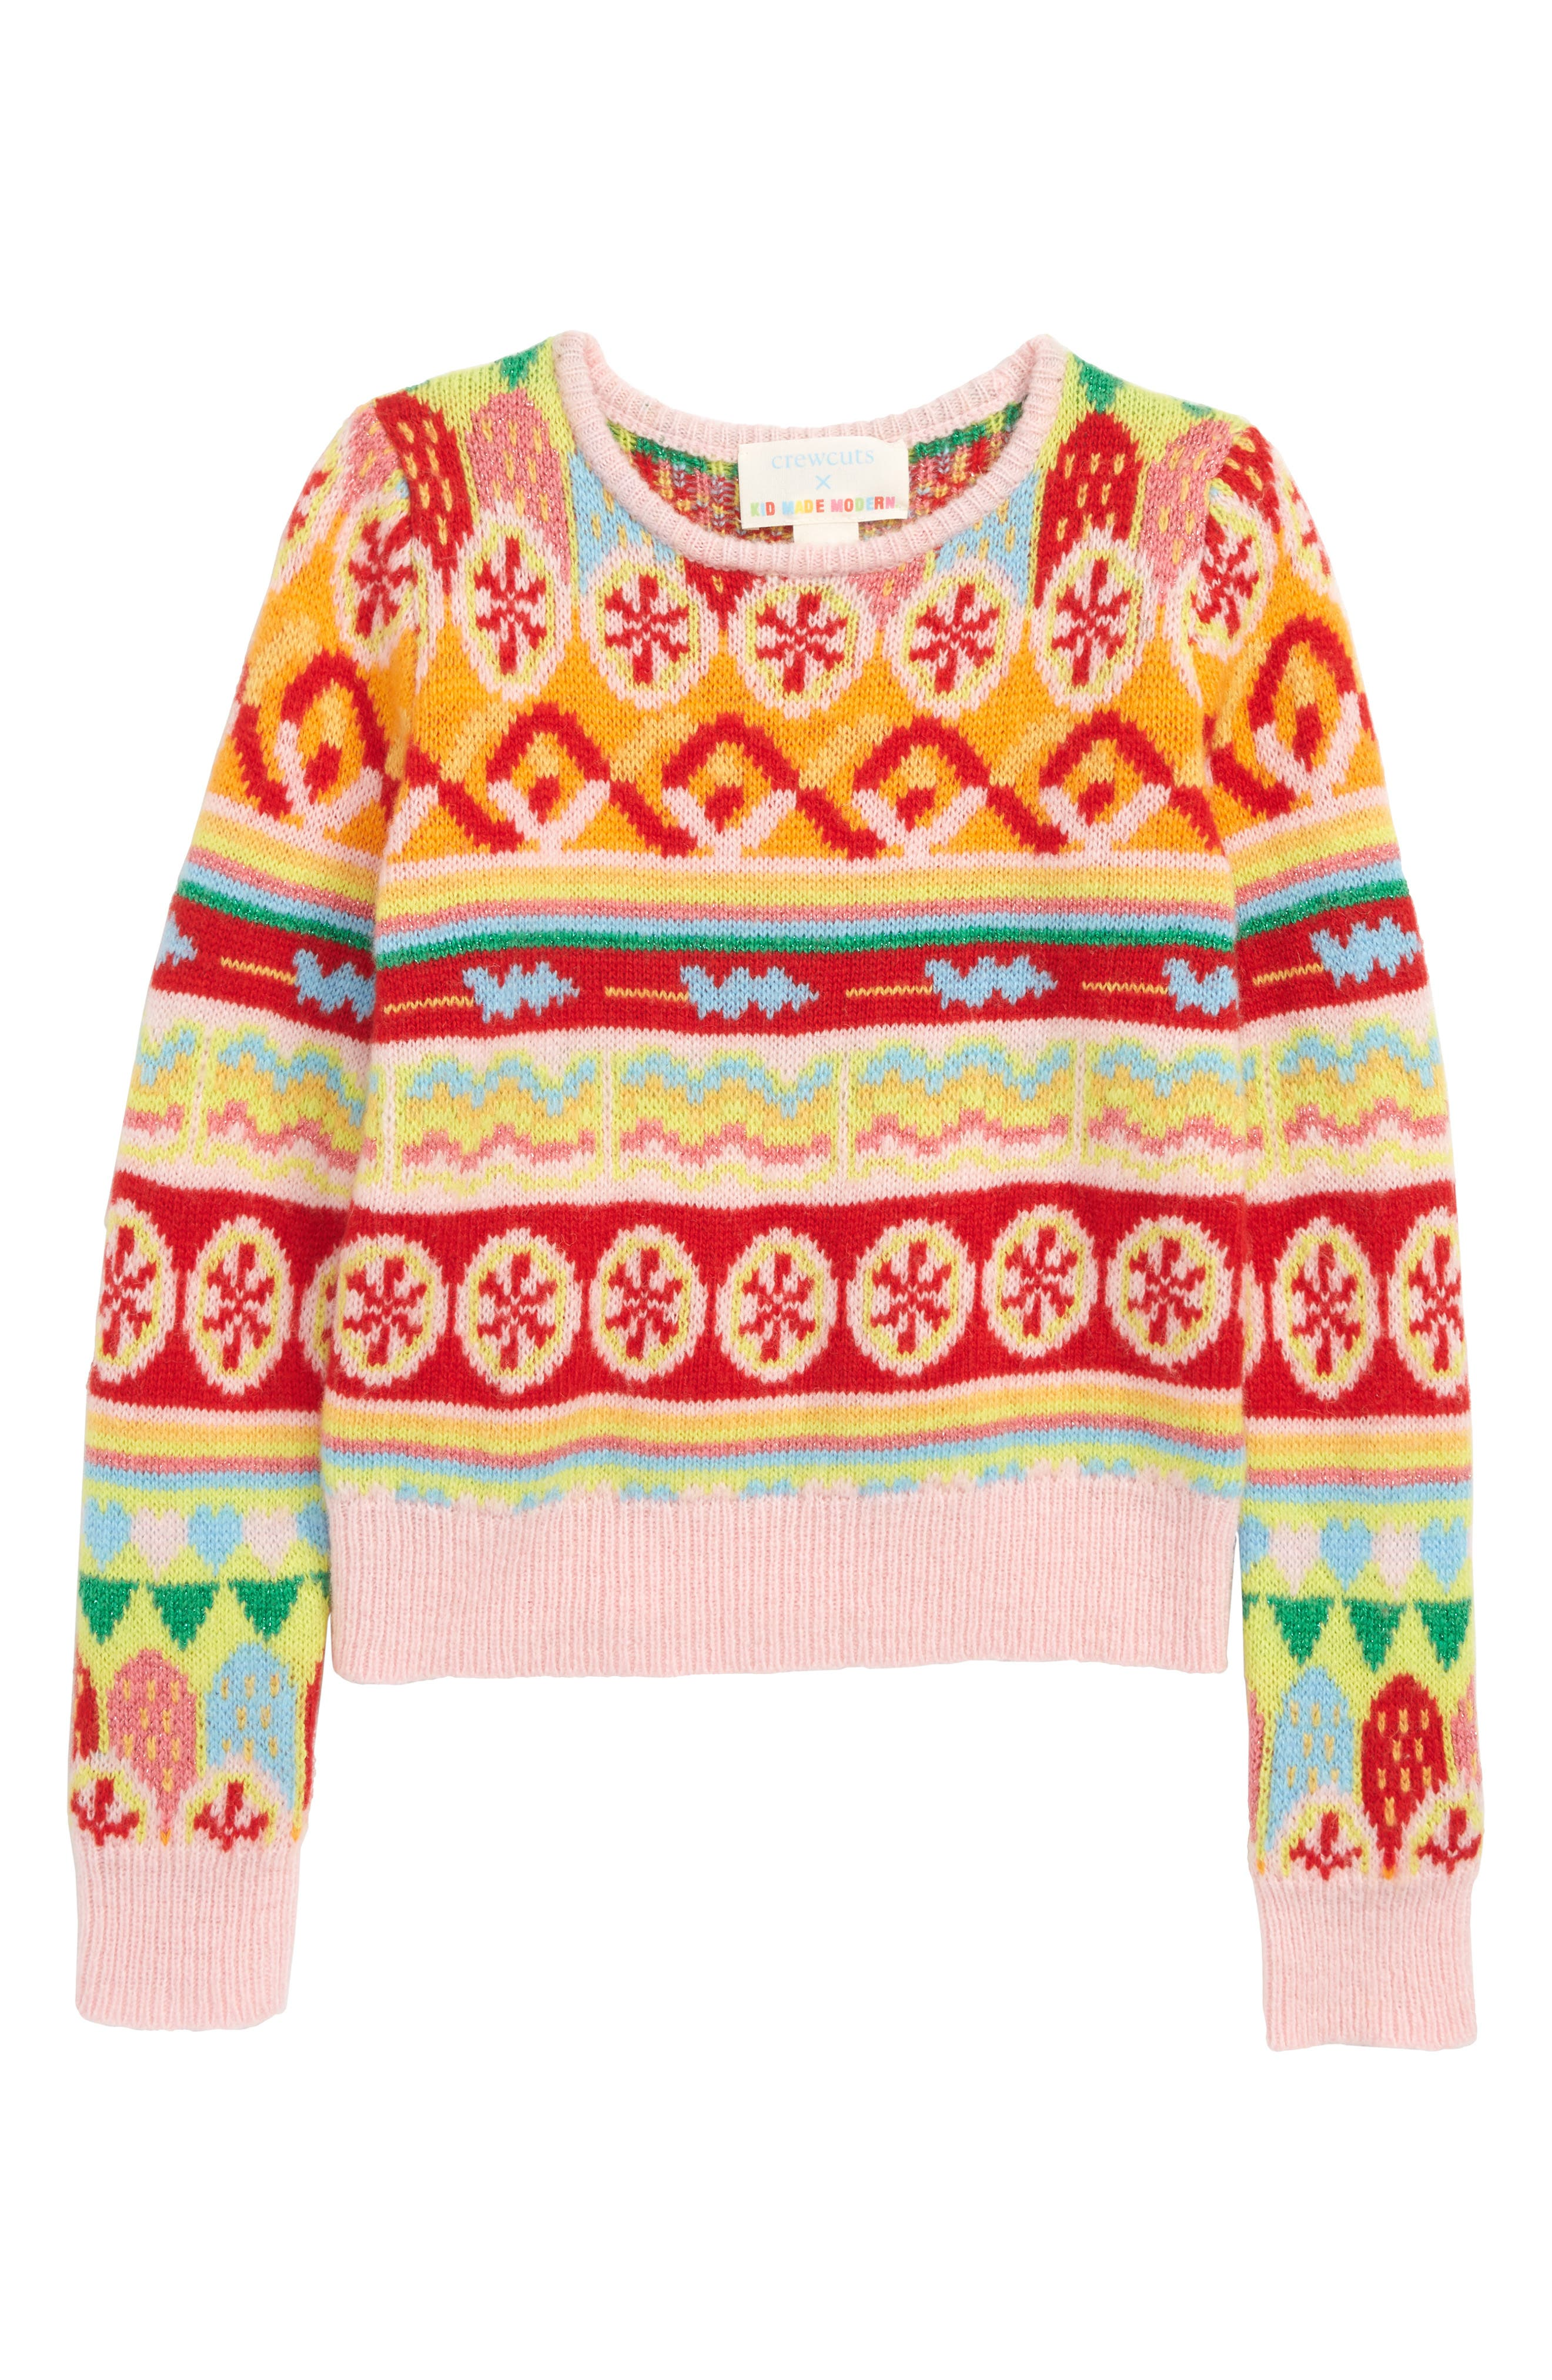 Toddler Girls Crewcuts By Jcrew X Kid Made Modern Fair Isle Sweater Size 3T  Pink